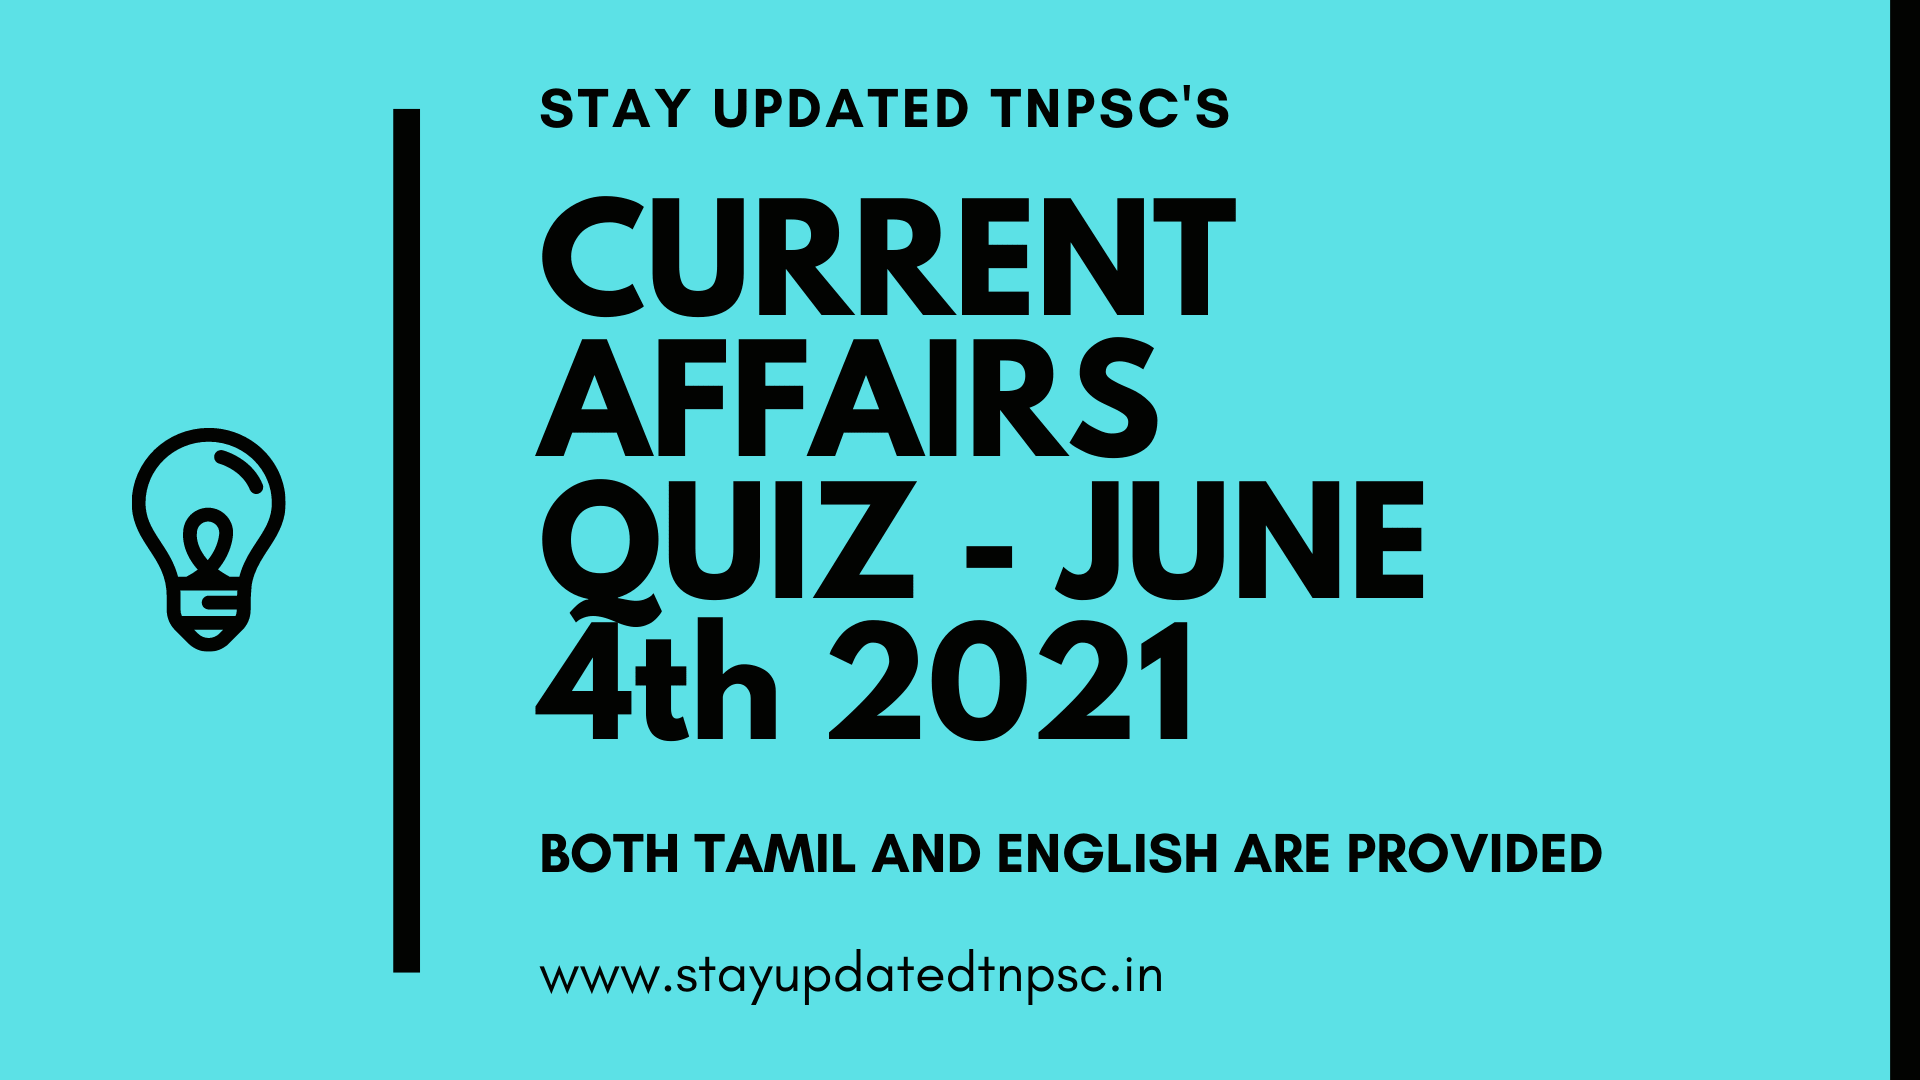 TNPSC DAILY CURRENT AFFAIRS: 04 JUNE 2021